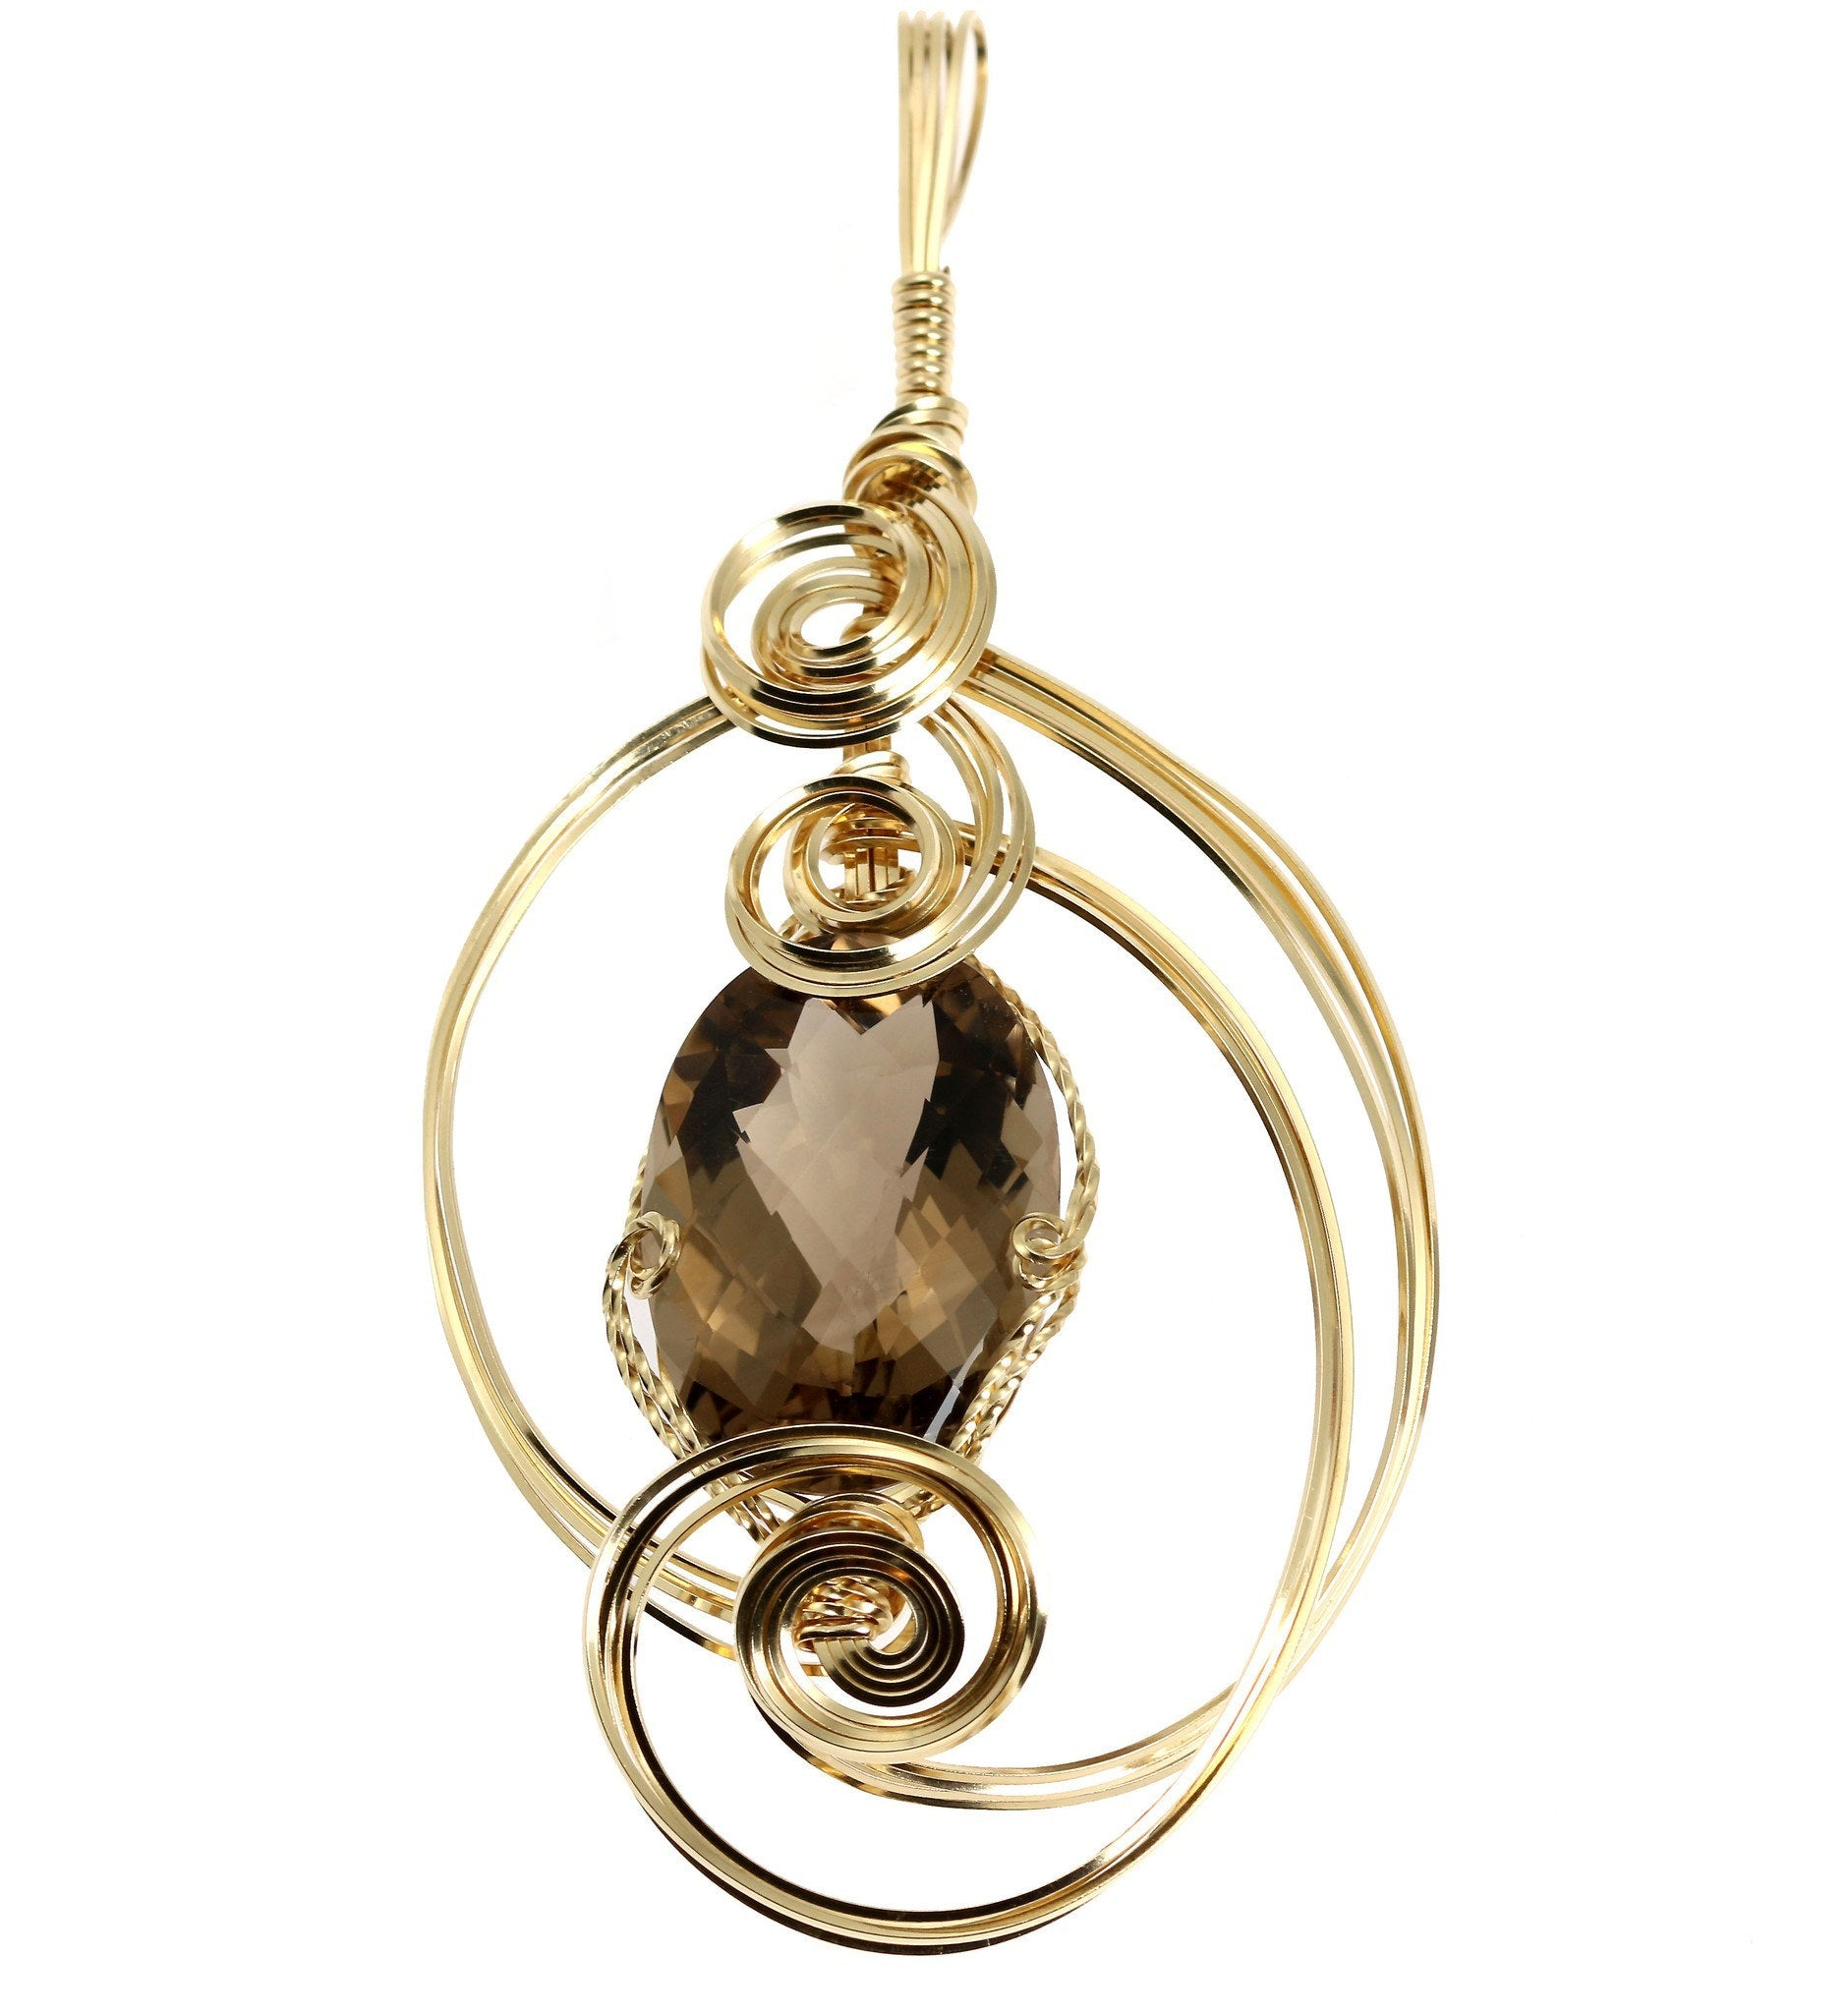 65 ct smoky quartz 14k gold filled wire wrapped pendant john s 65 ct smoky quartz 14k gold filled wire wrapped pendant johnsbrana 1 mozeypictures Gallery